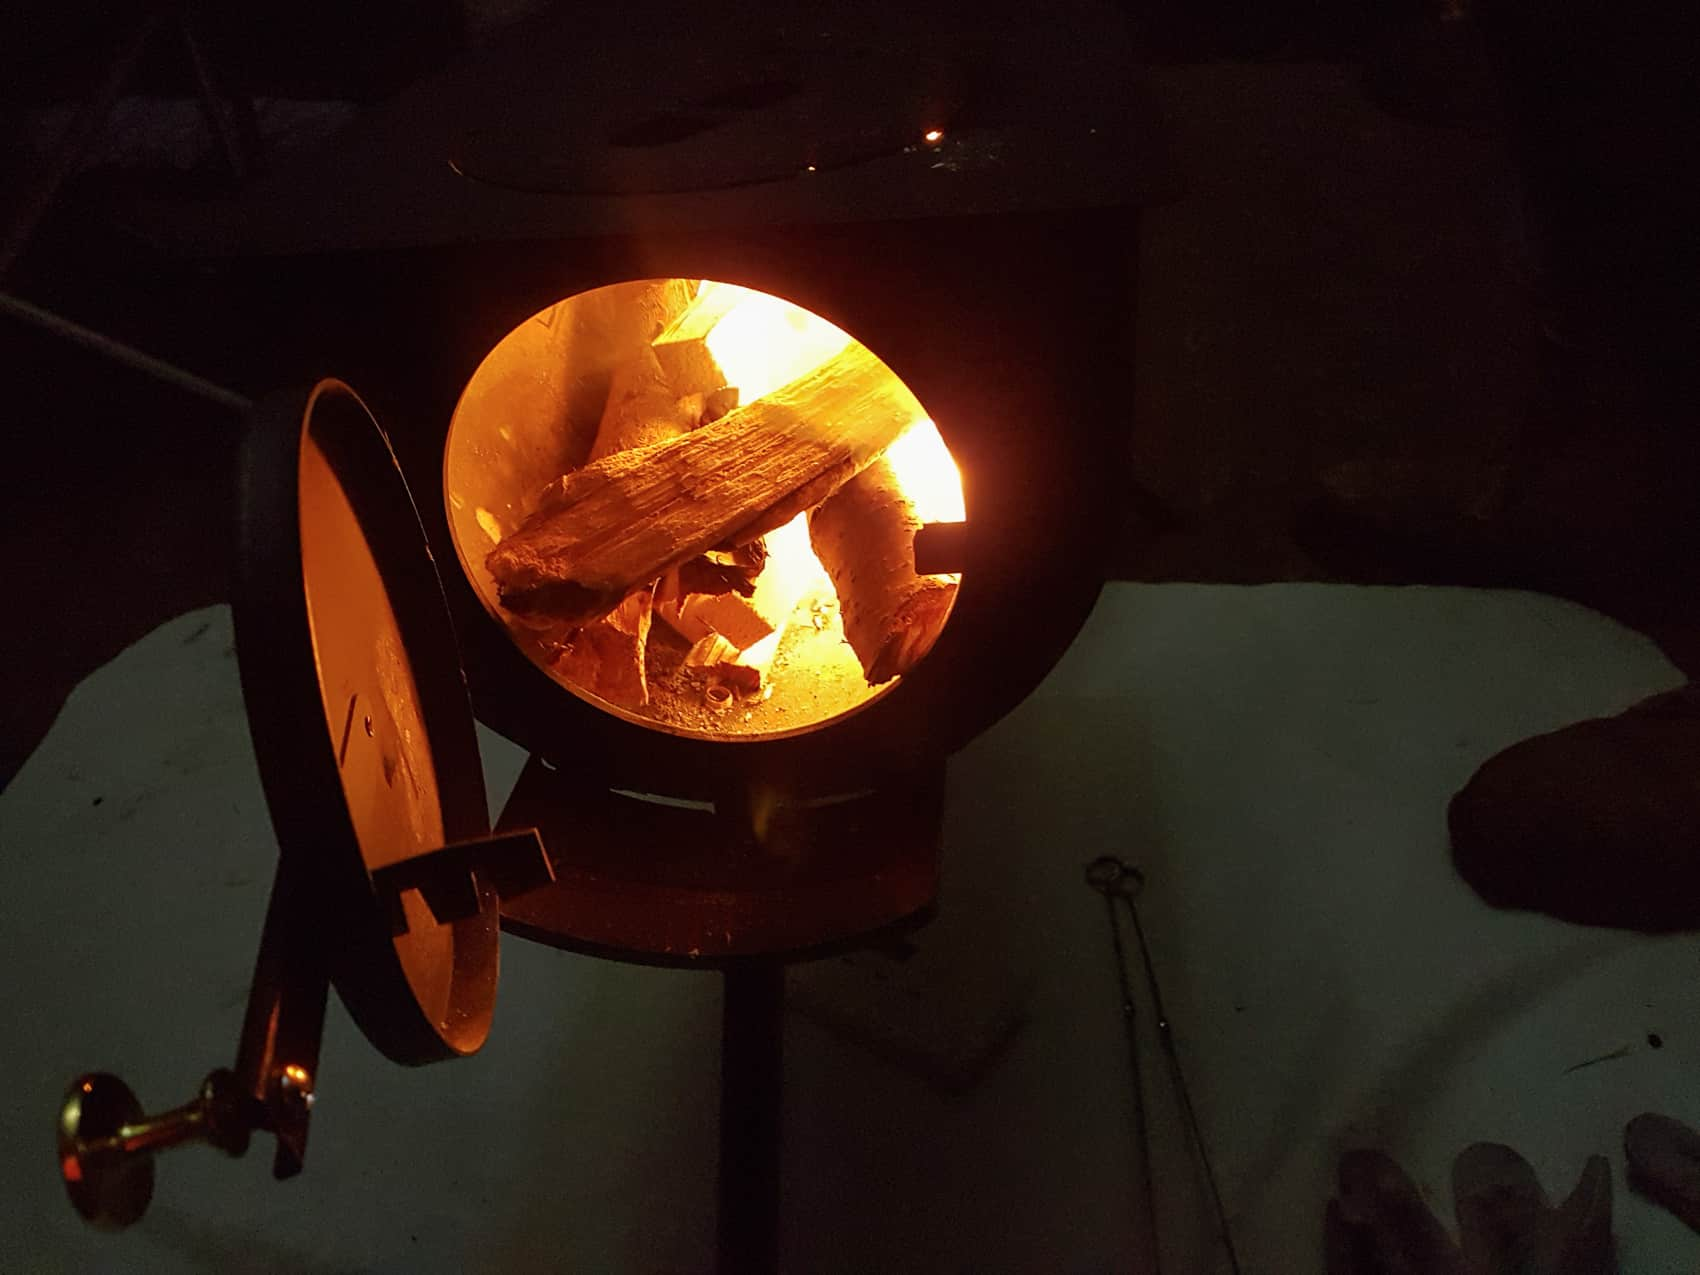 The glow of our stove provides both warmth and a boost to morale